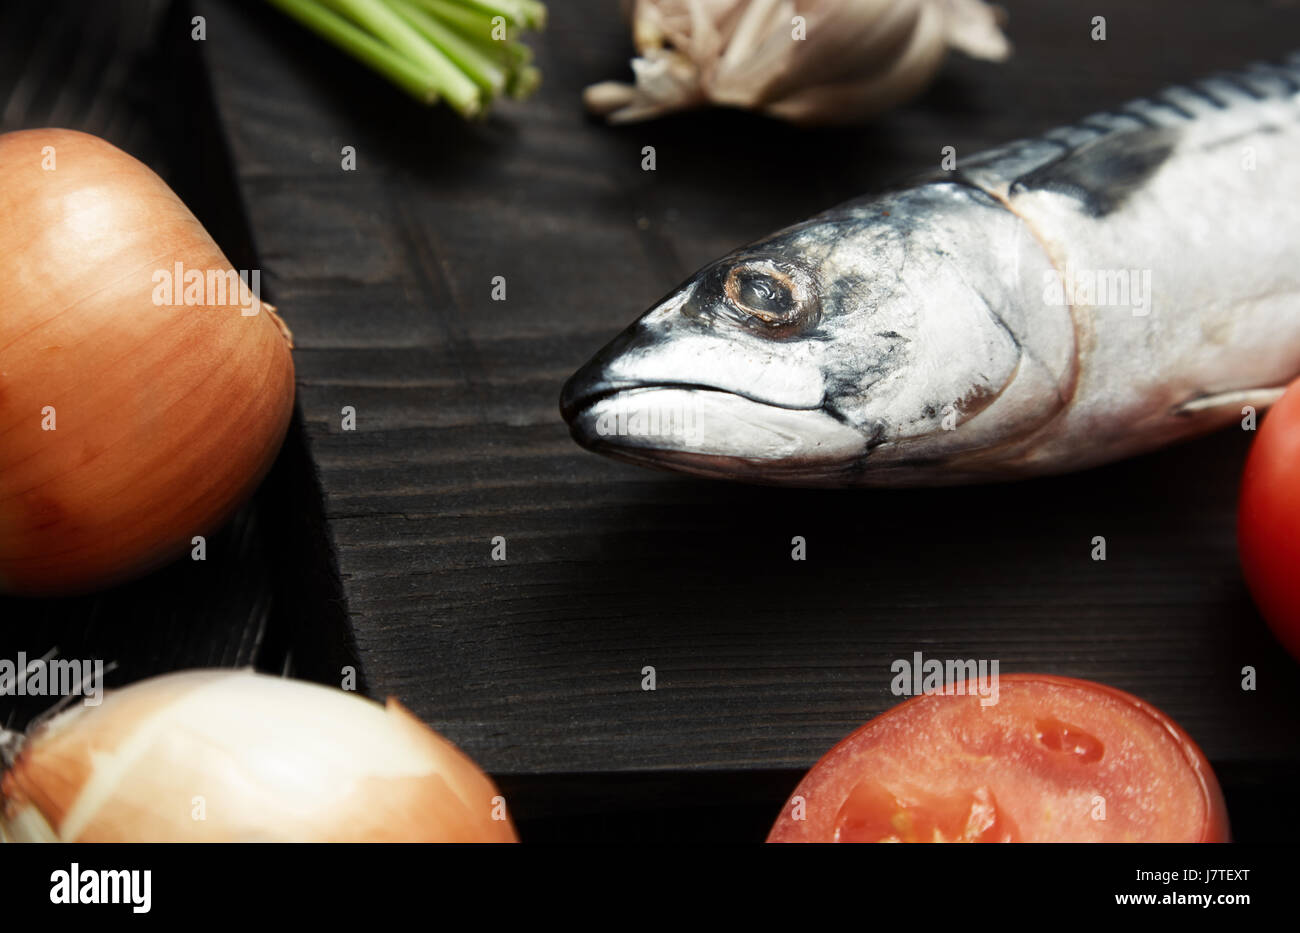 Mackerel and vegetables on a wooden table. Horizonal photo - Stock Image